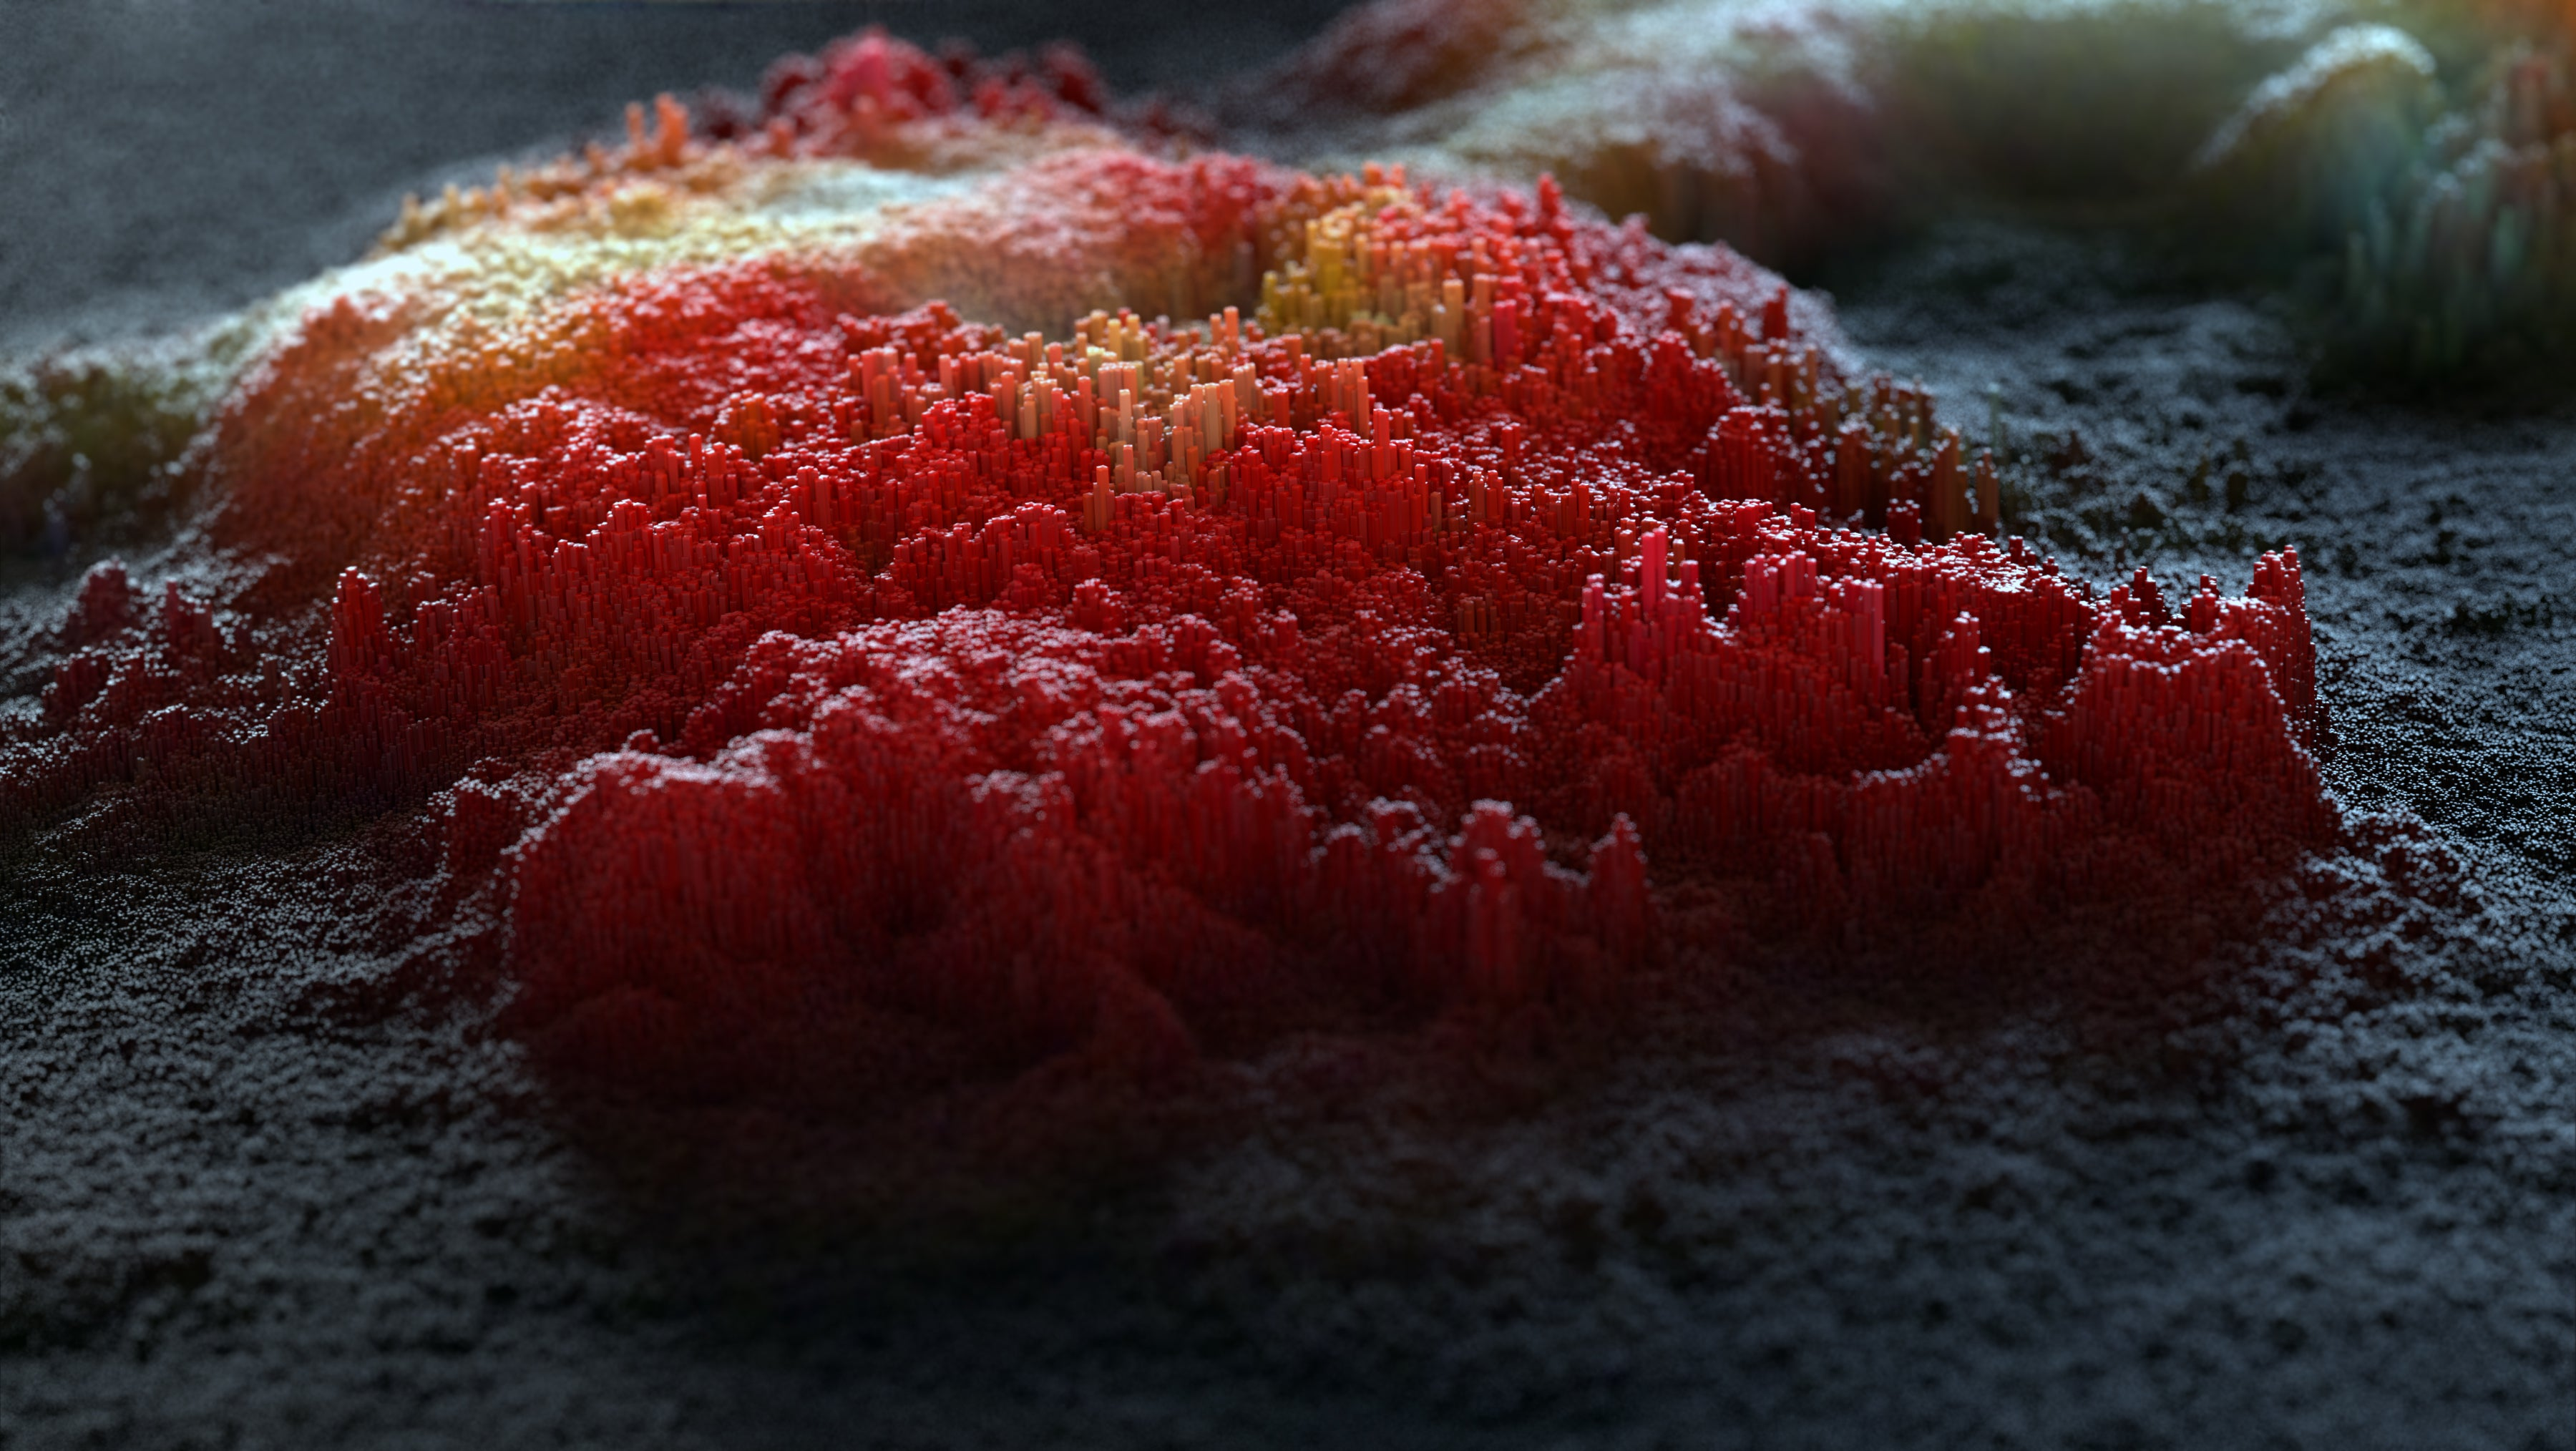 Gorgeous renders look like alien planets or Minecraft worlds